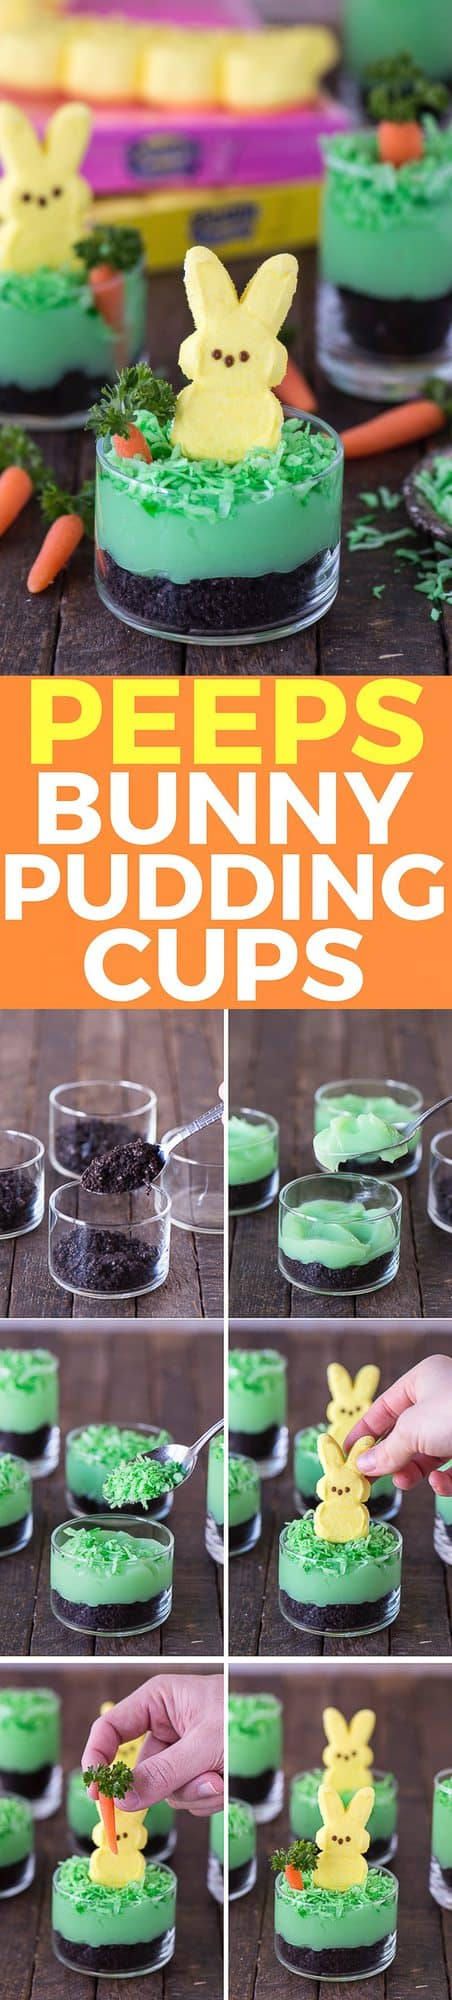 Simple, no bake easter dessert! Peeps bunny pudding cups with oreos, pudding, coconut, a mini carrot and peeps!